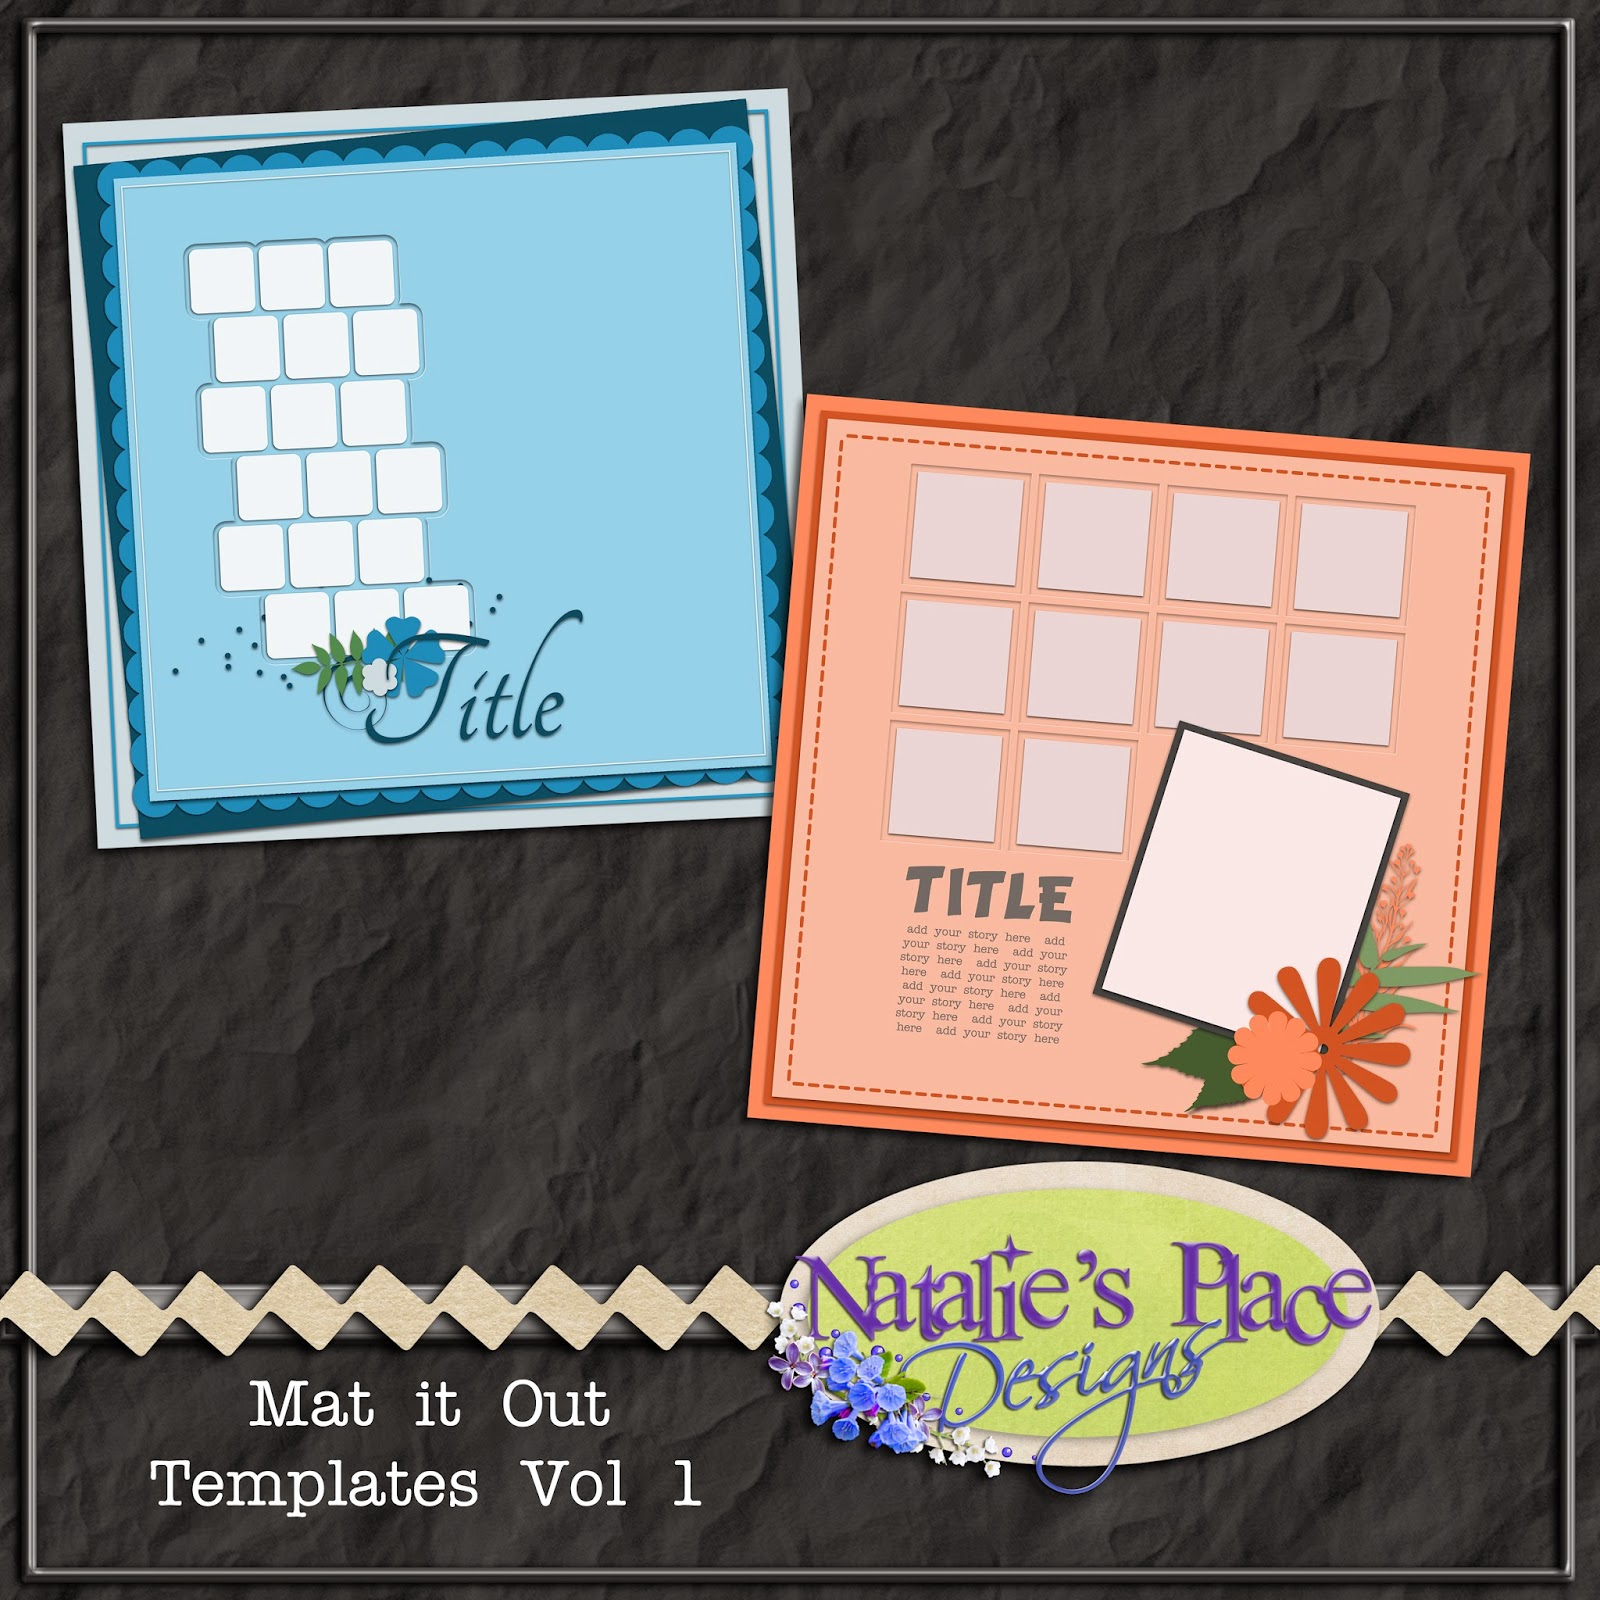 http://natalieslittlecorneroftheworld.blogspot.com/2014/08/a-few-new-templates.html